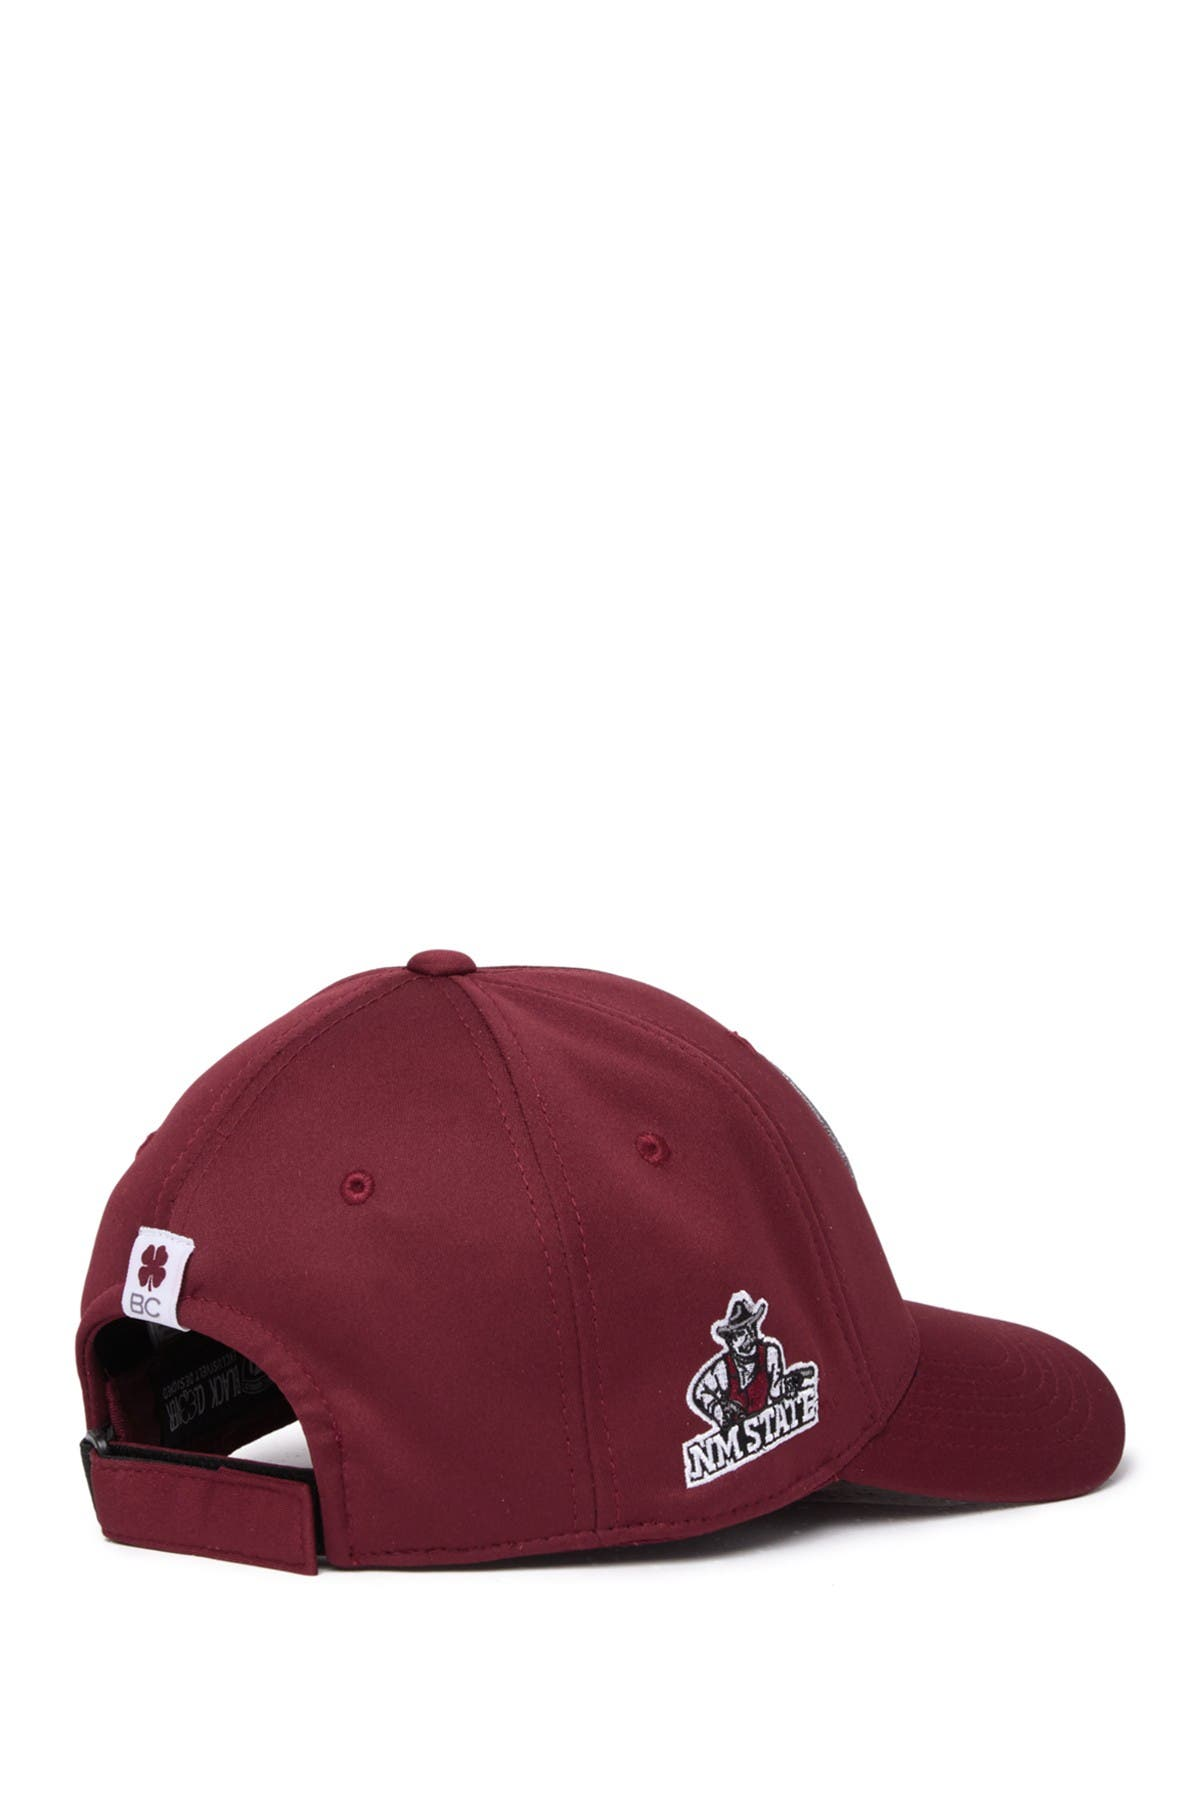 Image of Black Clover New Mexico State University Premium Baseball Cap